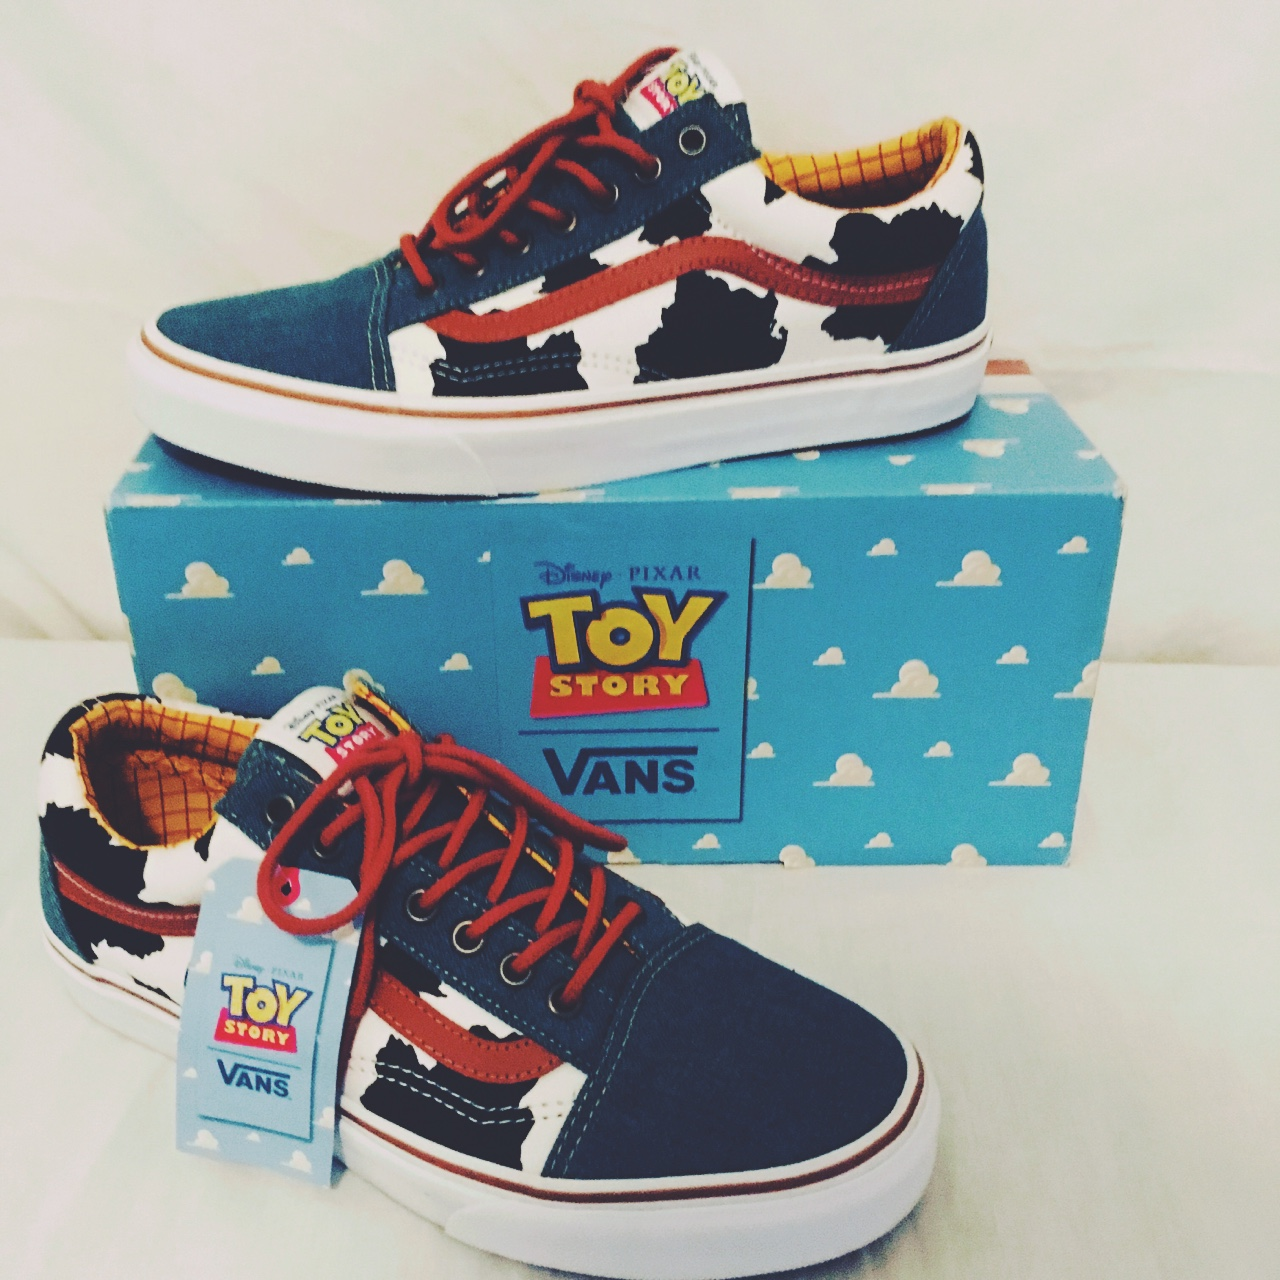 Toy Story x Vans collab. These are brand new, never Depop